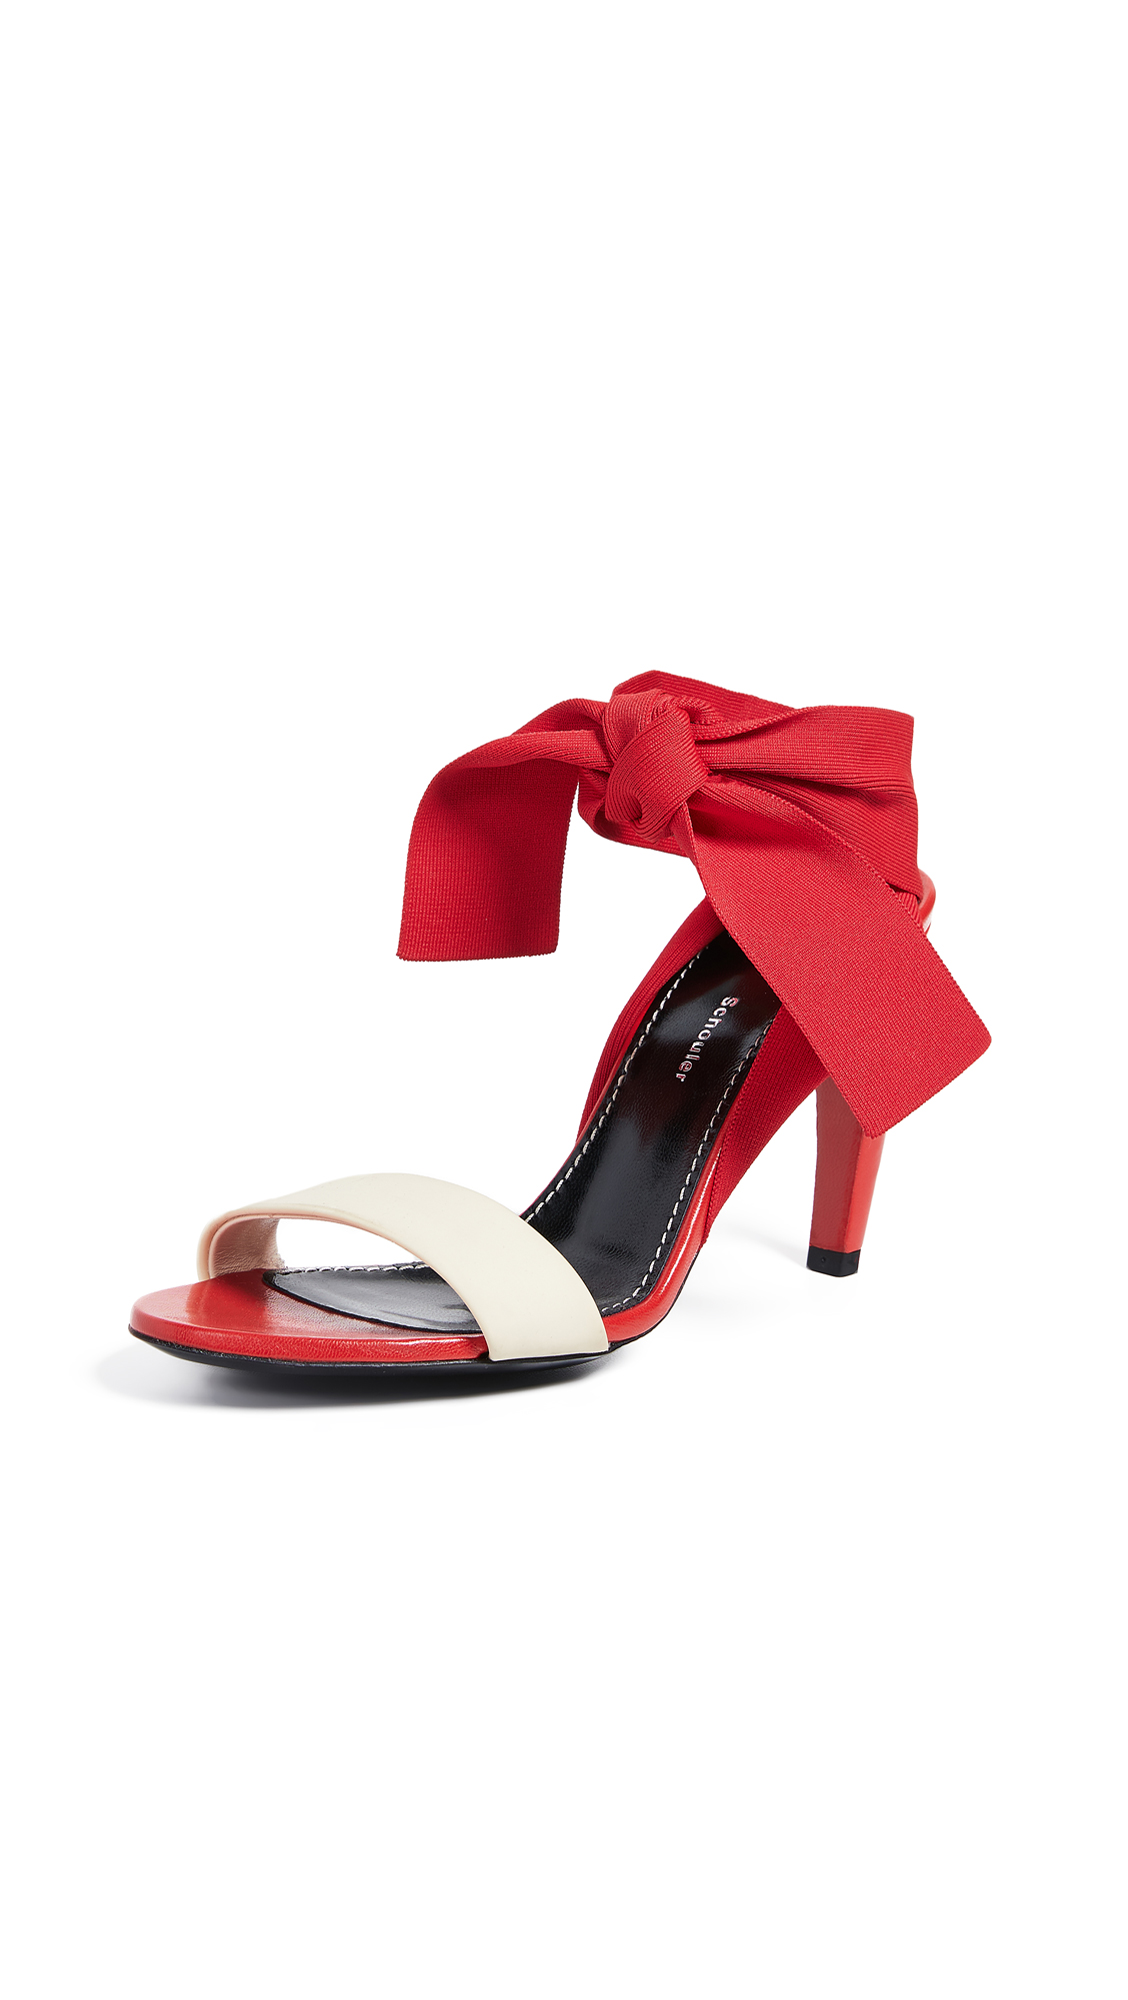 Proenza Schouler Knit Strap Sandals - Red/Cream